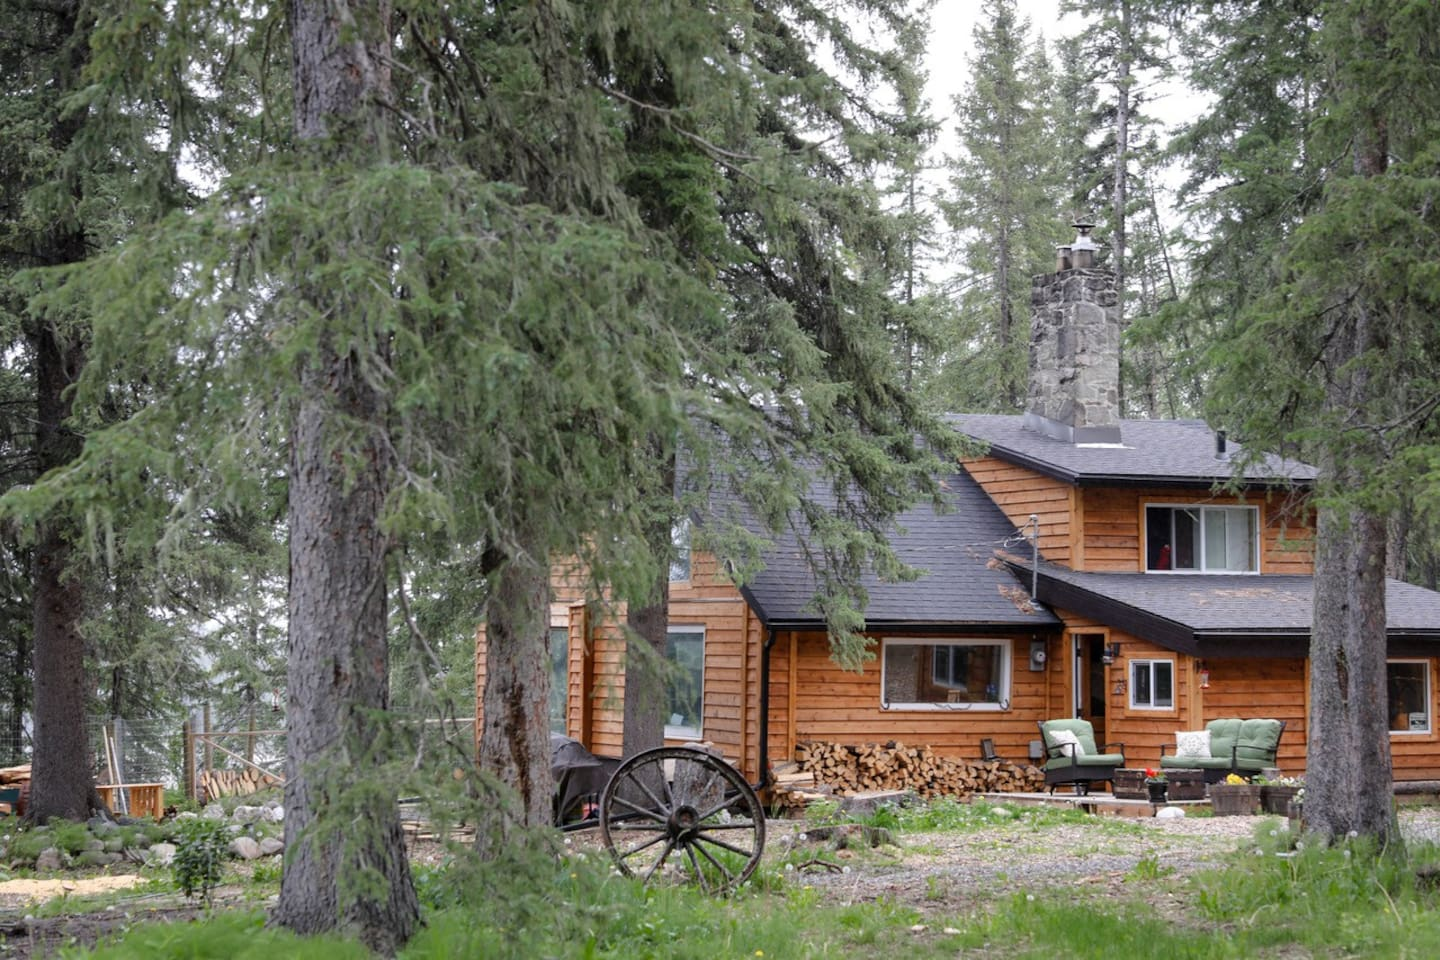 100 year old restored historic cabin with amazing river views.  Beautiful restored logs(inside), and a truly quaint rustic feel.  Dog friendly with permission as there is a fenced yard, and dog pen.  Wood and gas fireplace.  www.visitbraggcreek.com